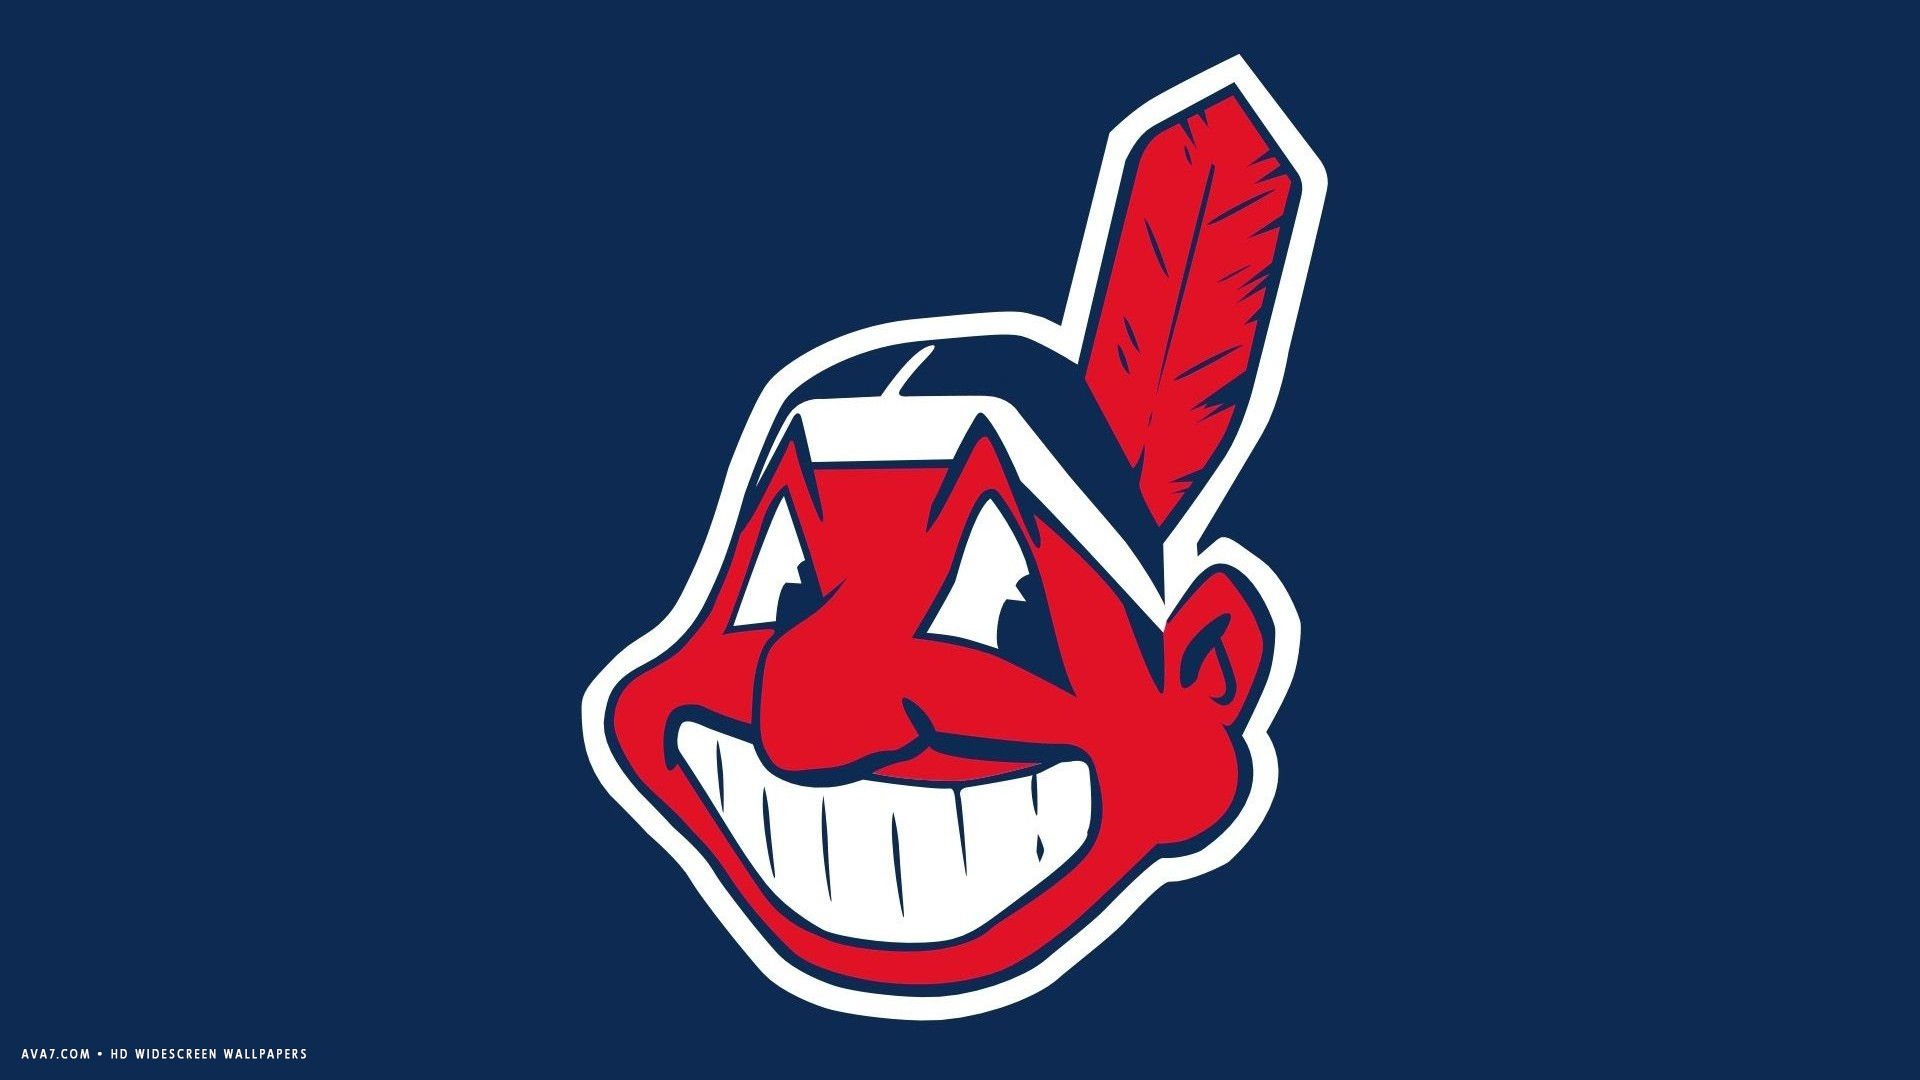 cleveland indians mlb baseball team hd widescreen wallpaper 1920x1080